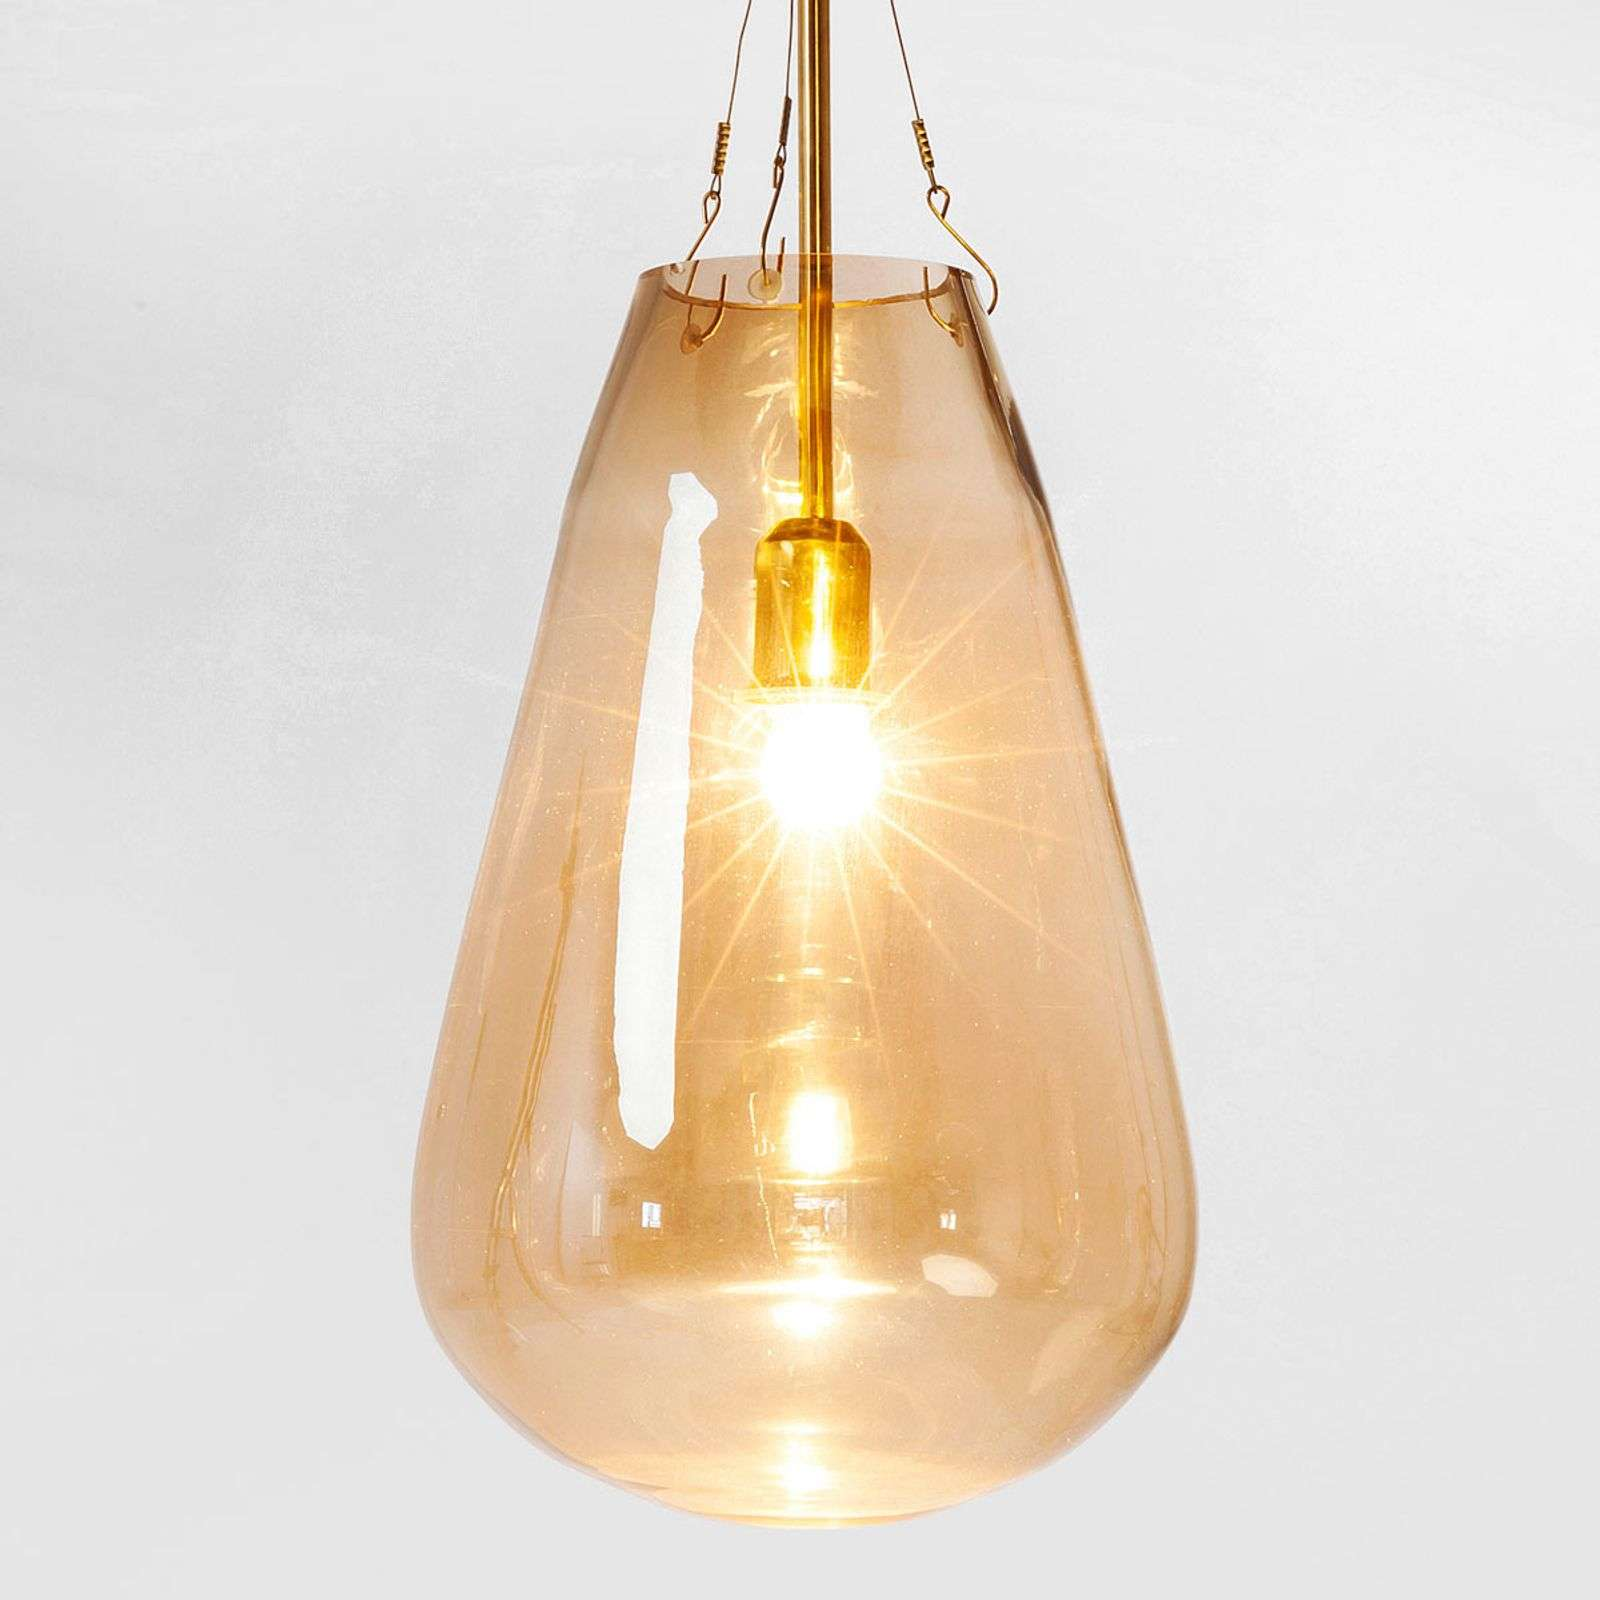 Jolie suspension Dusty Bell Gold en verre